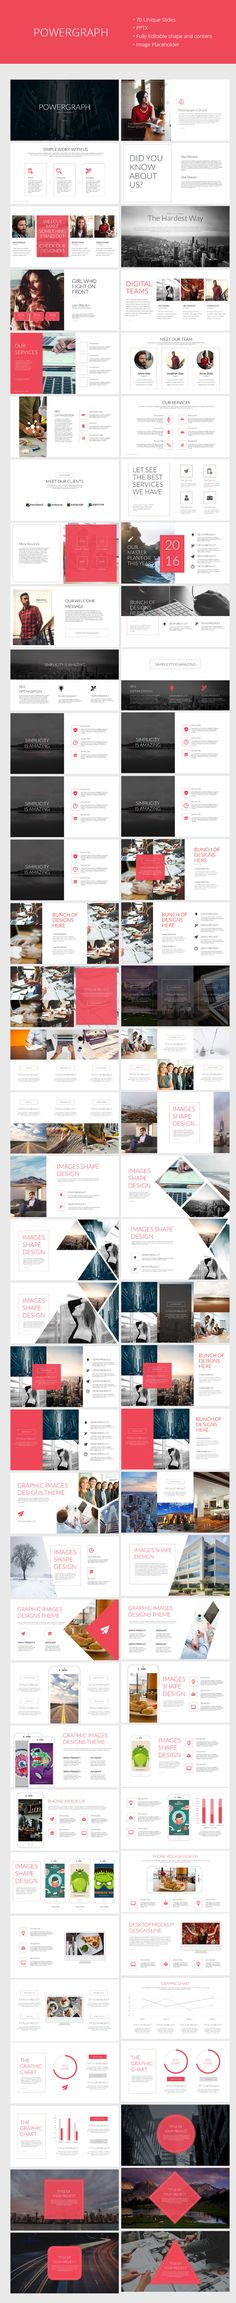 84 best free presentation templates images on pinterest powergraph clean powerpoint template toneelgroepblik Image collections